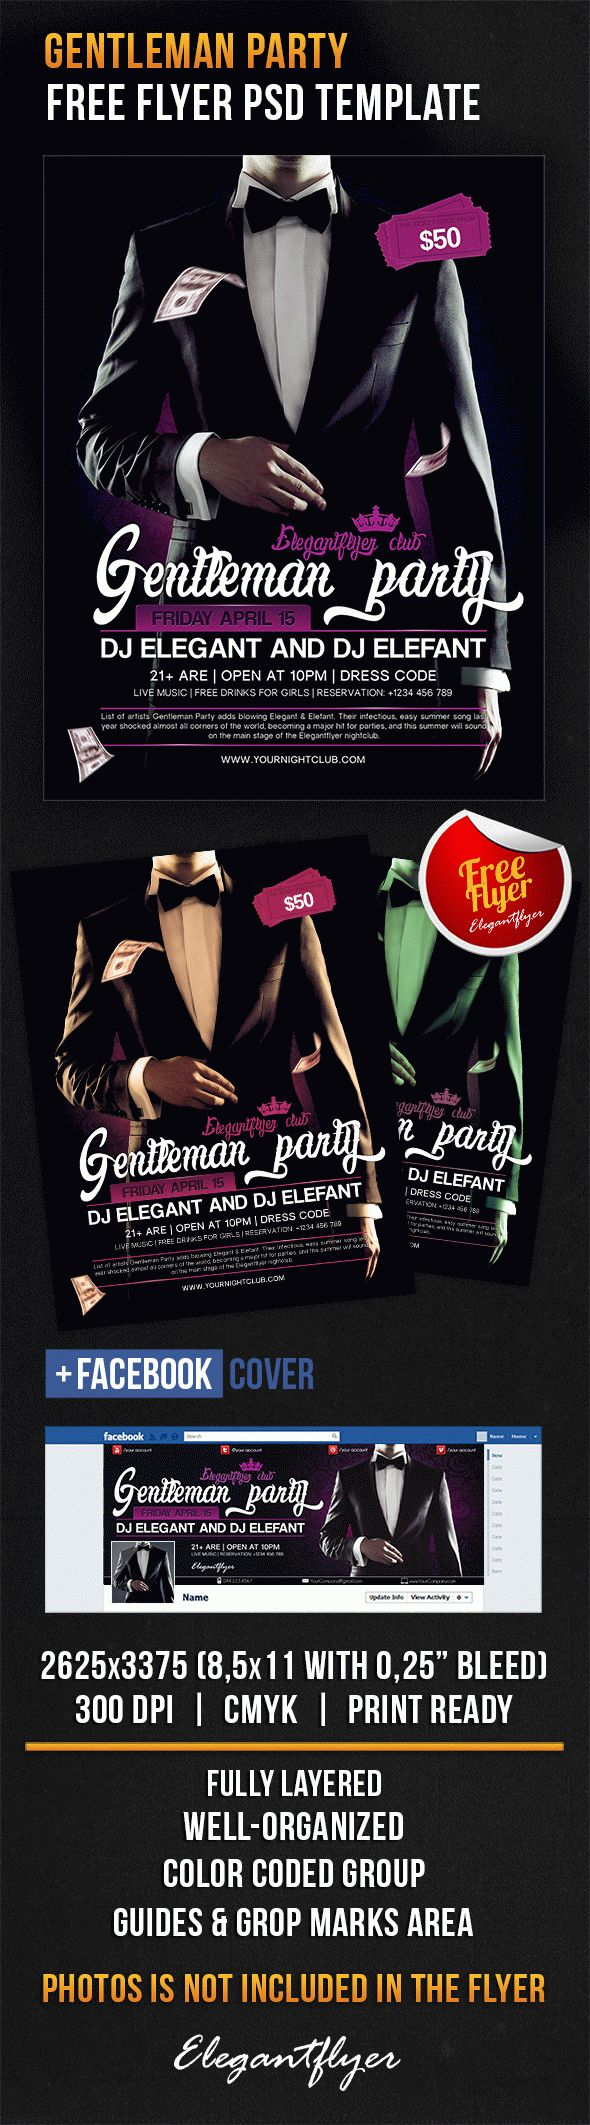 Gentleman Party – Free Flyer PSD Template + Facebook Cover